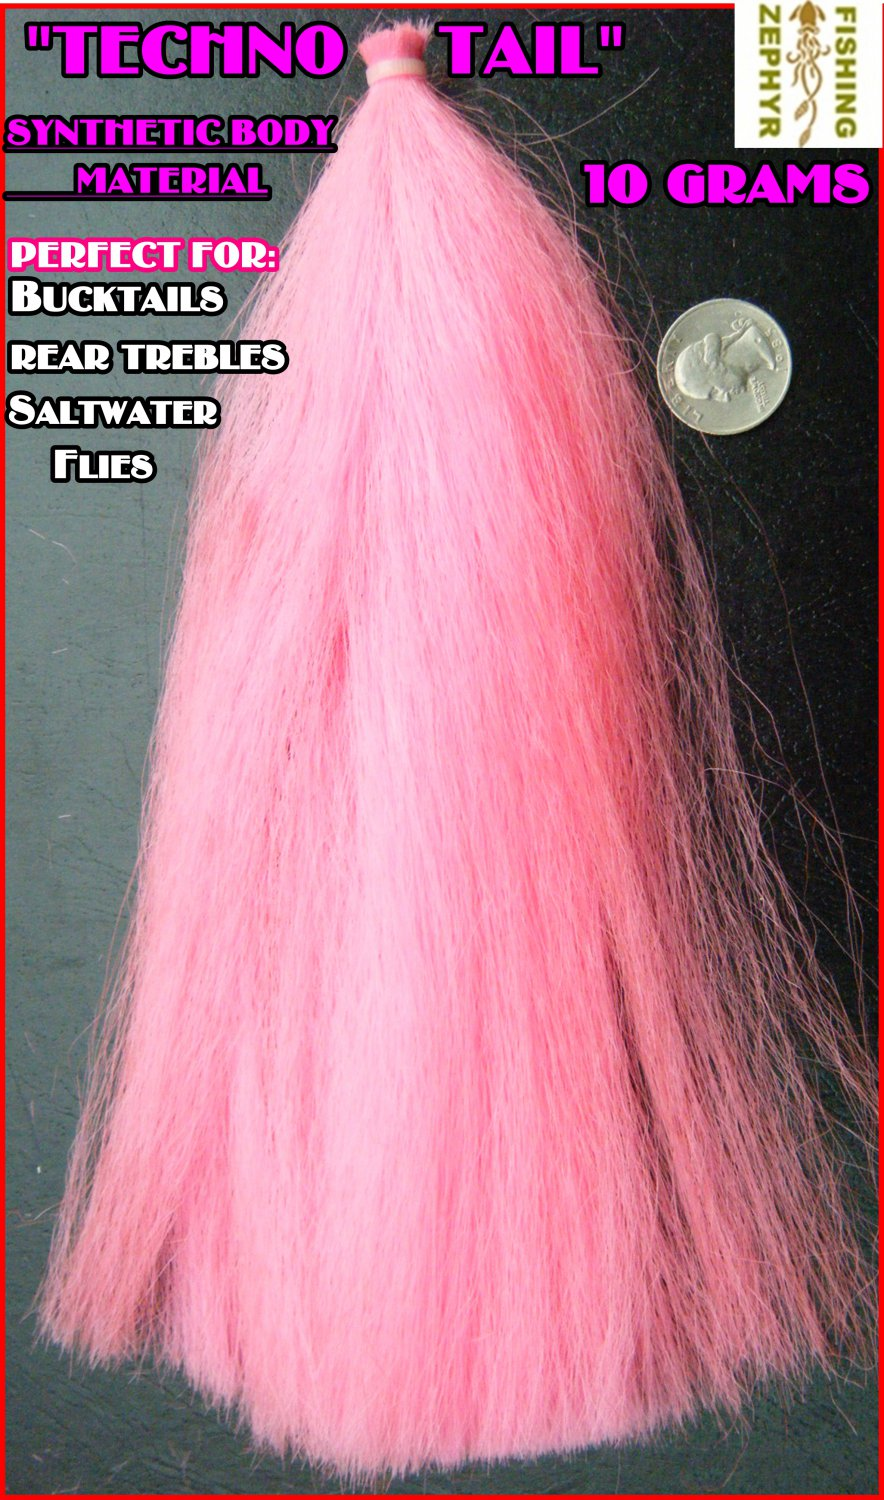 """NEW PINK """"TECHNO TAIL""""TIE TEASERS,FLY'S,BUCKTAILS-TOUGH SYNTHETIC*Easy to Tie:)"""